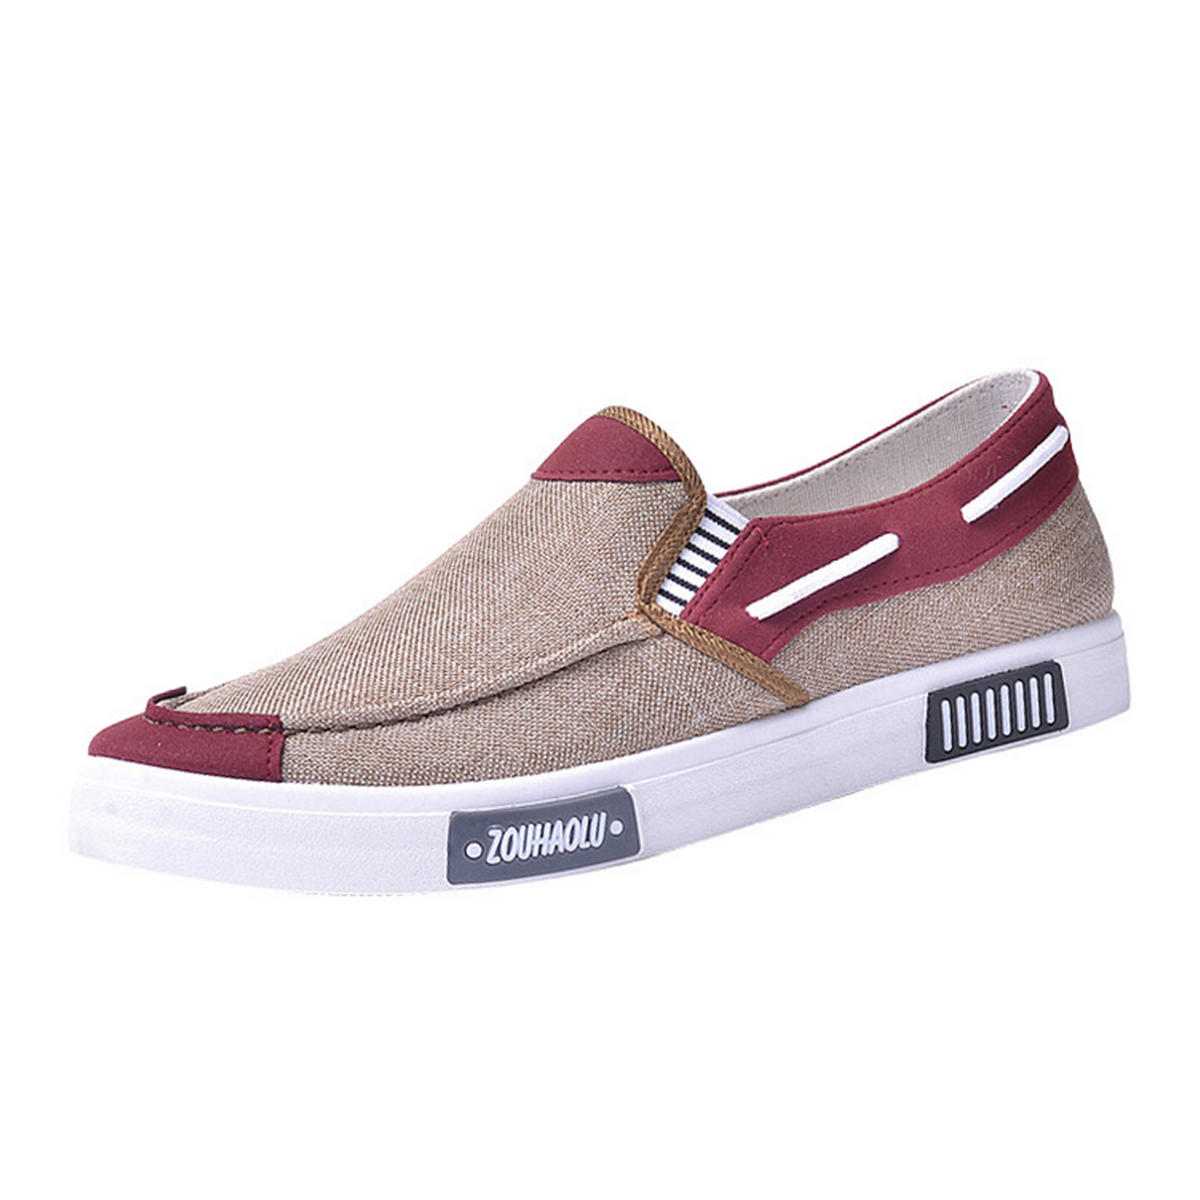 Men's Canvas Shoes Casual Sports Light Breathable Comfortable Sports Shoes Sneakers - 4